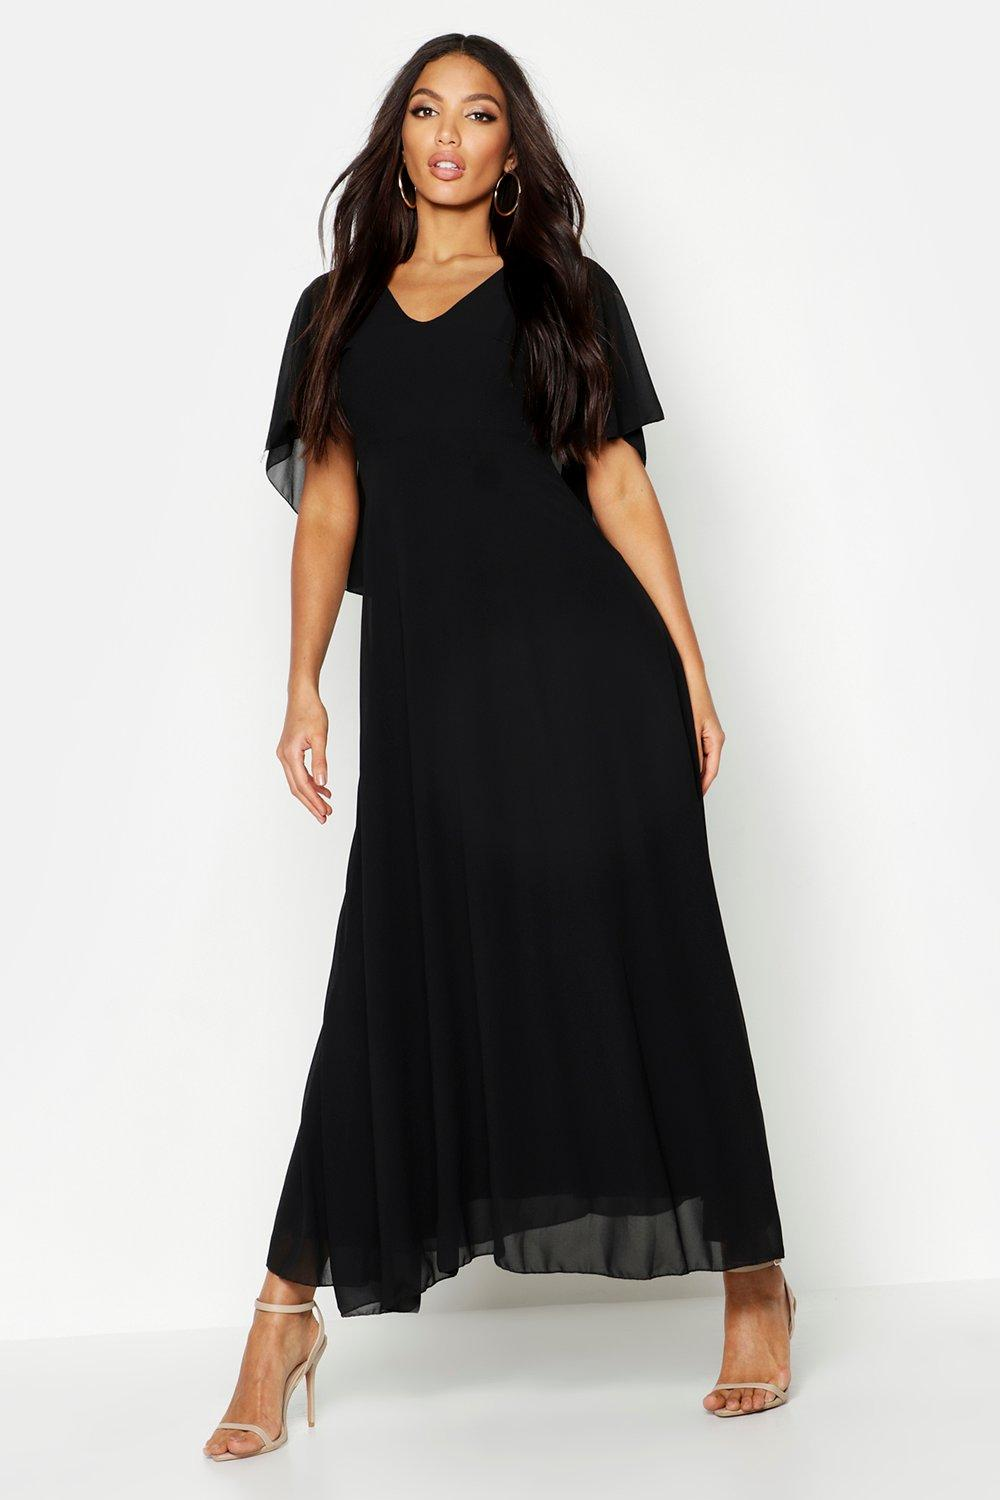 1920s Evening Dresses & Formal Gowns Cape Detail Chiffon Maxi Dress $60.00 AT vintagedancer.com